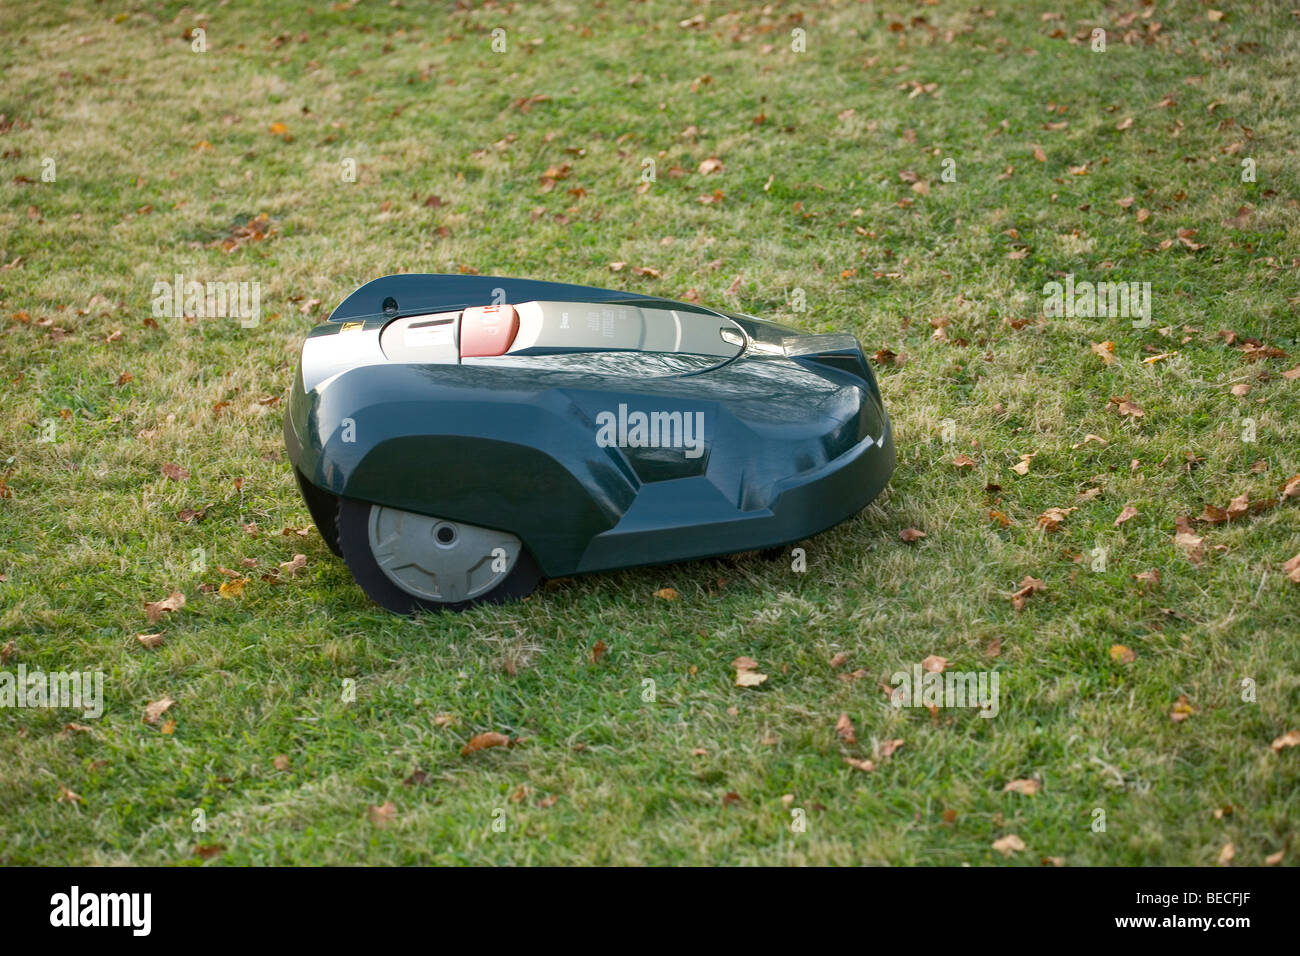 Automatic robot lawn mower cutting grass side view - Stock Image